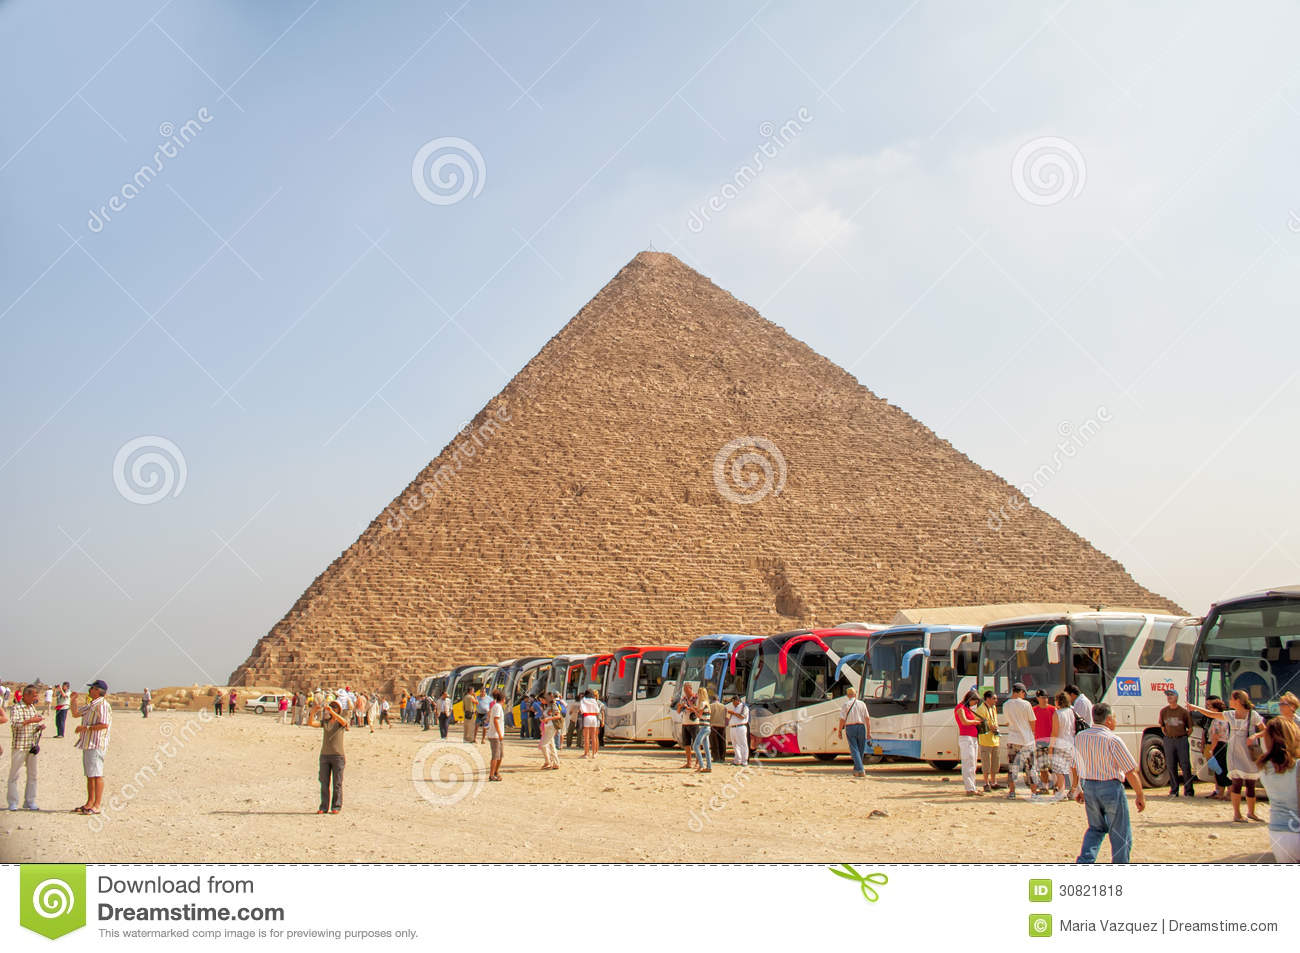 an analysis of elements and dimensions of the great pyramid in egypt The giza pyramid complex is an archaeological site on the giza plateau, on the  outskirts of  by virtue of its more elevated location, and the steeper angle of  inclination of its construction—it is, in fact, smaller in both height and volume.